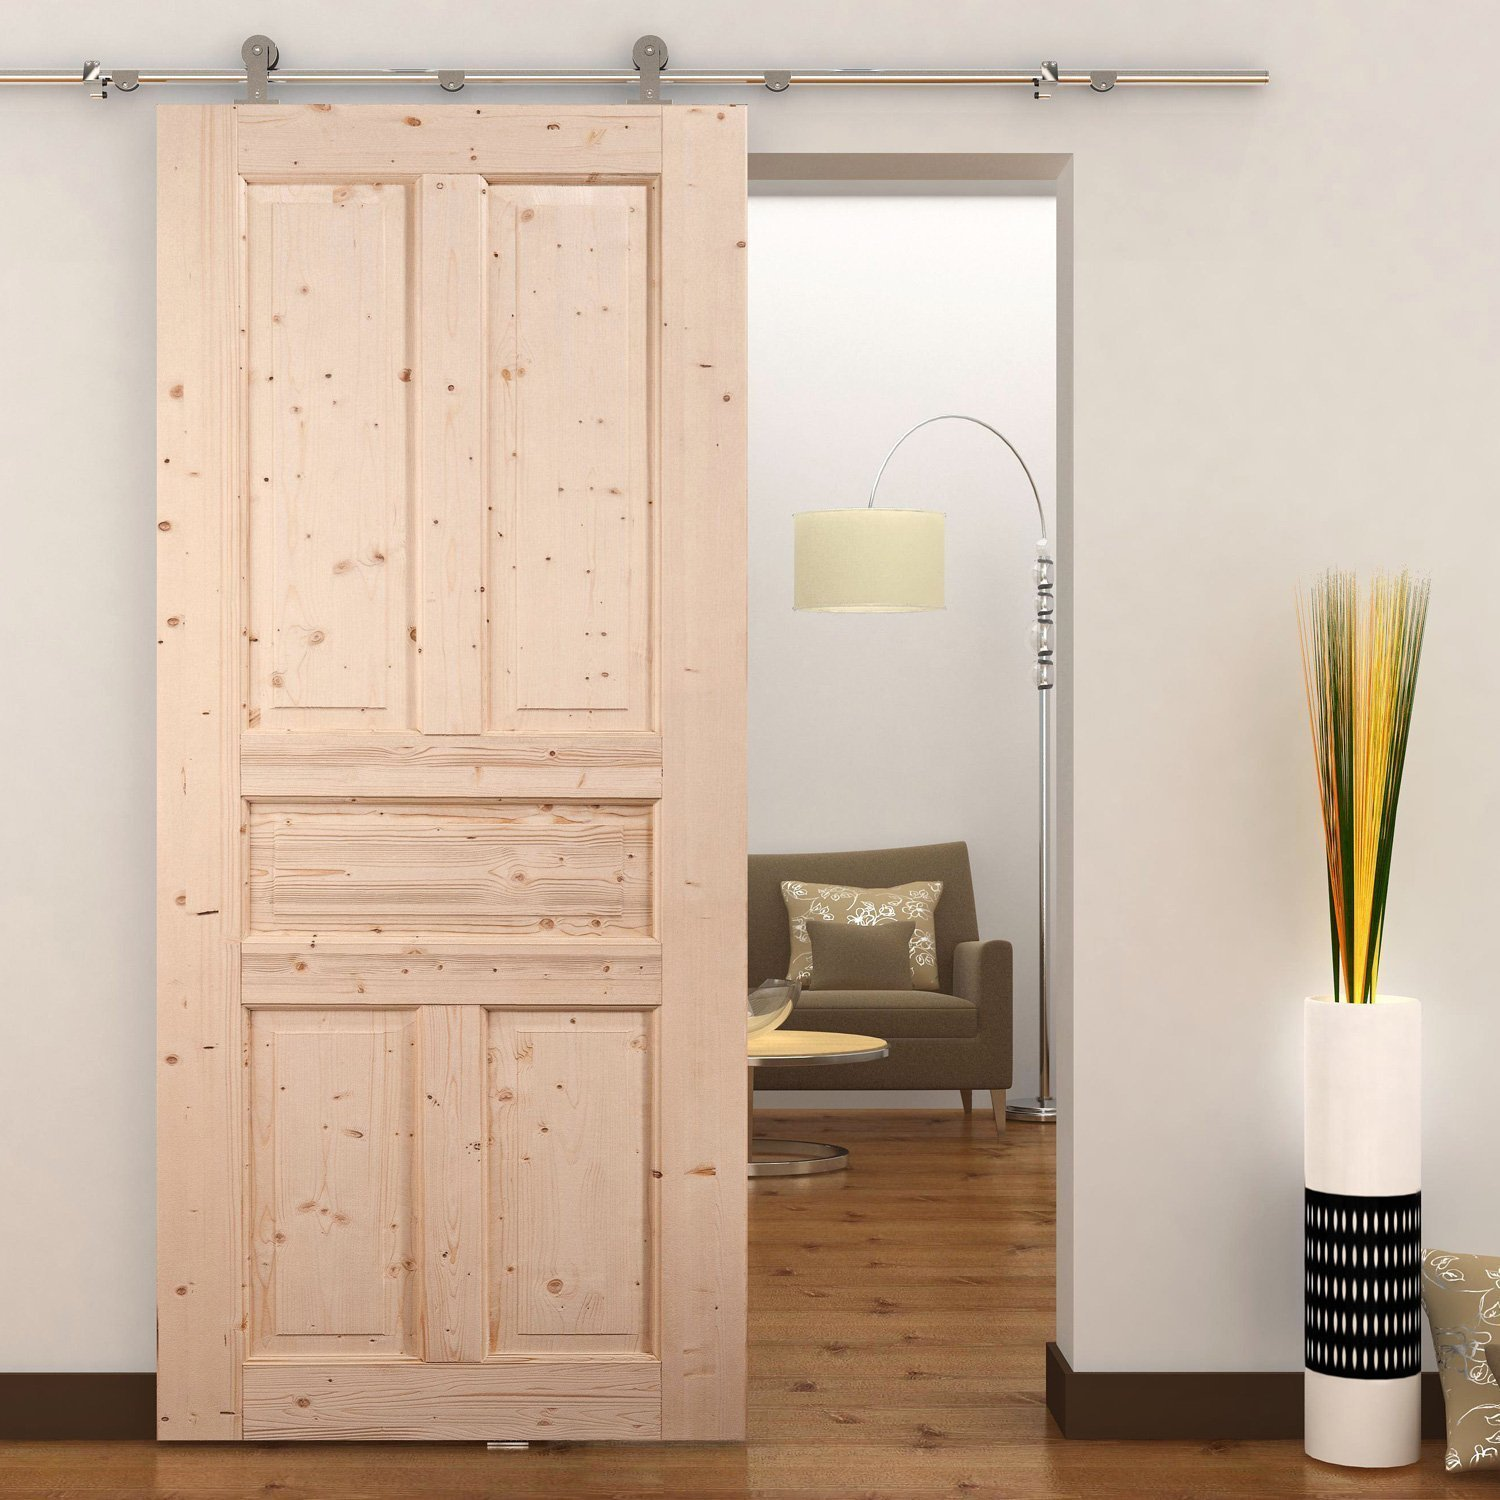 door sliding kits hardware life products track want you the live design barn to interior